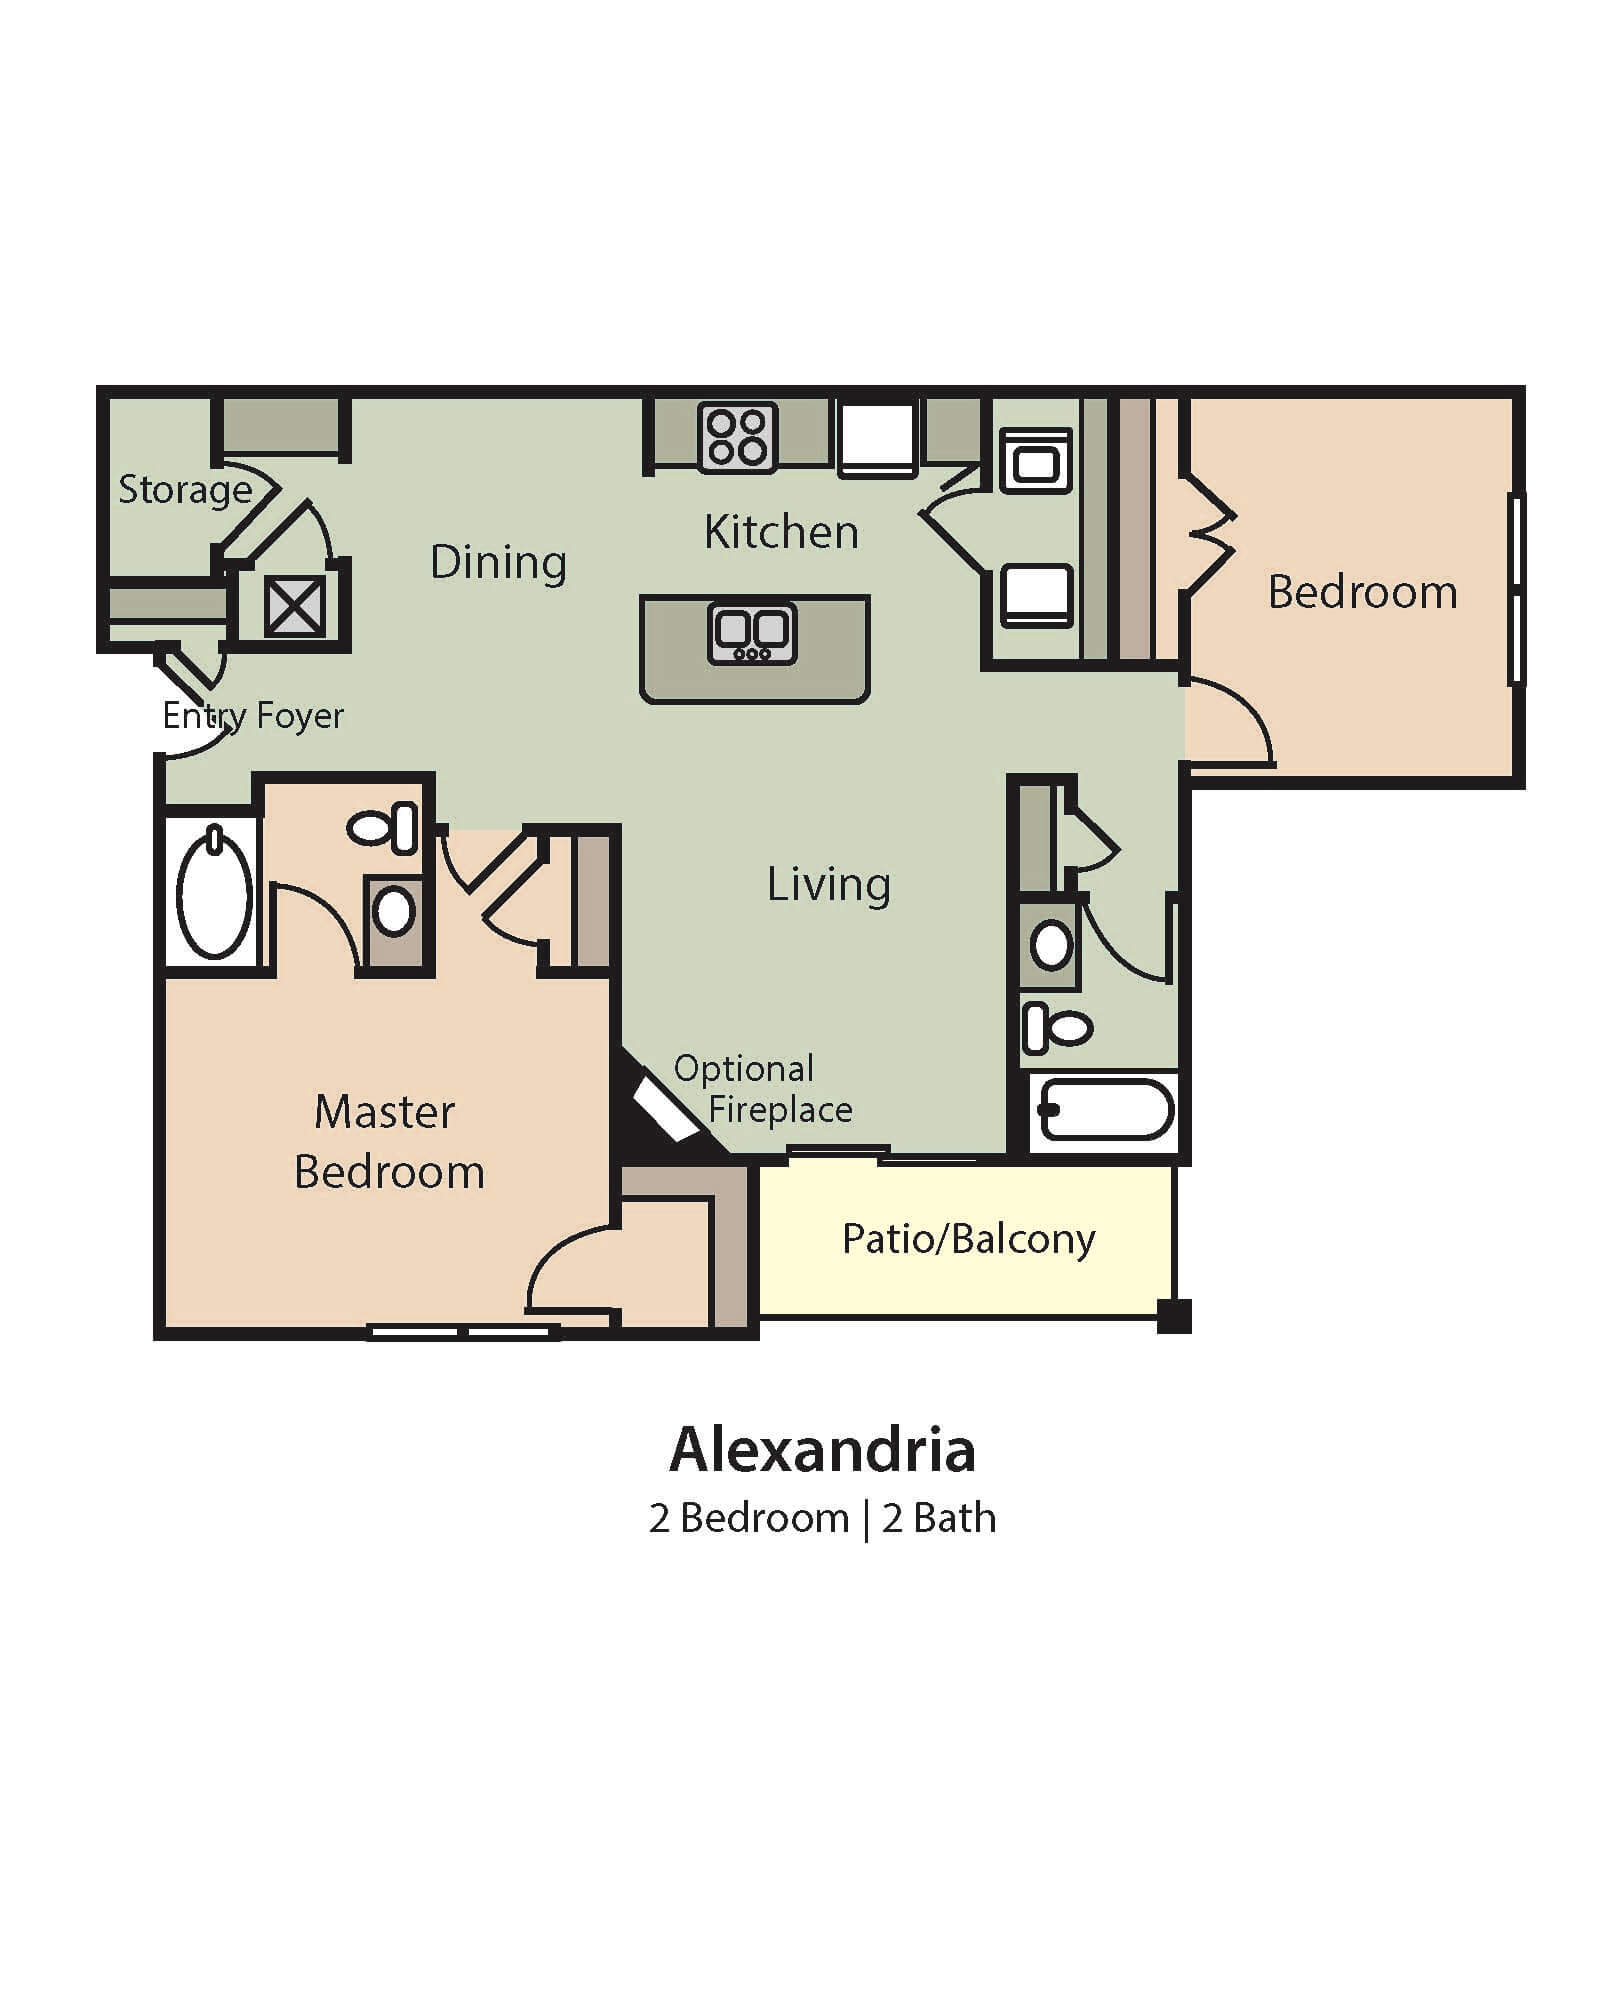 Alexandria Floor Plan, 2 Bedrooms, 2 Baths